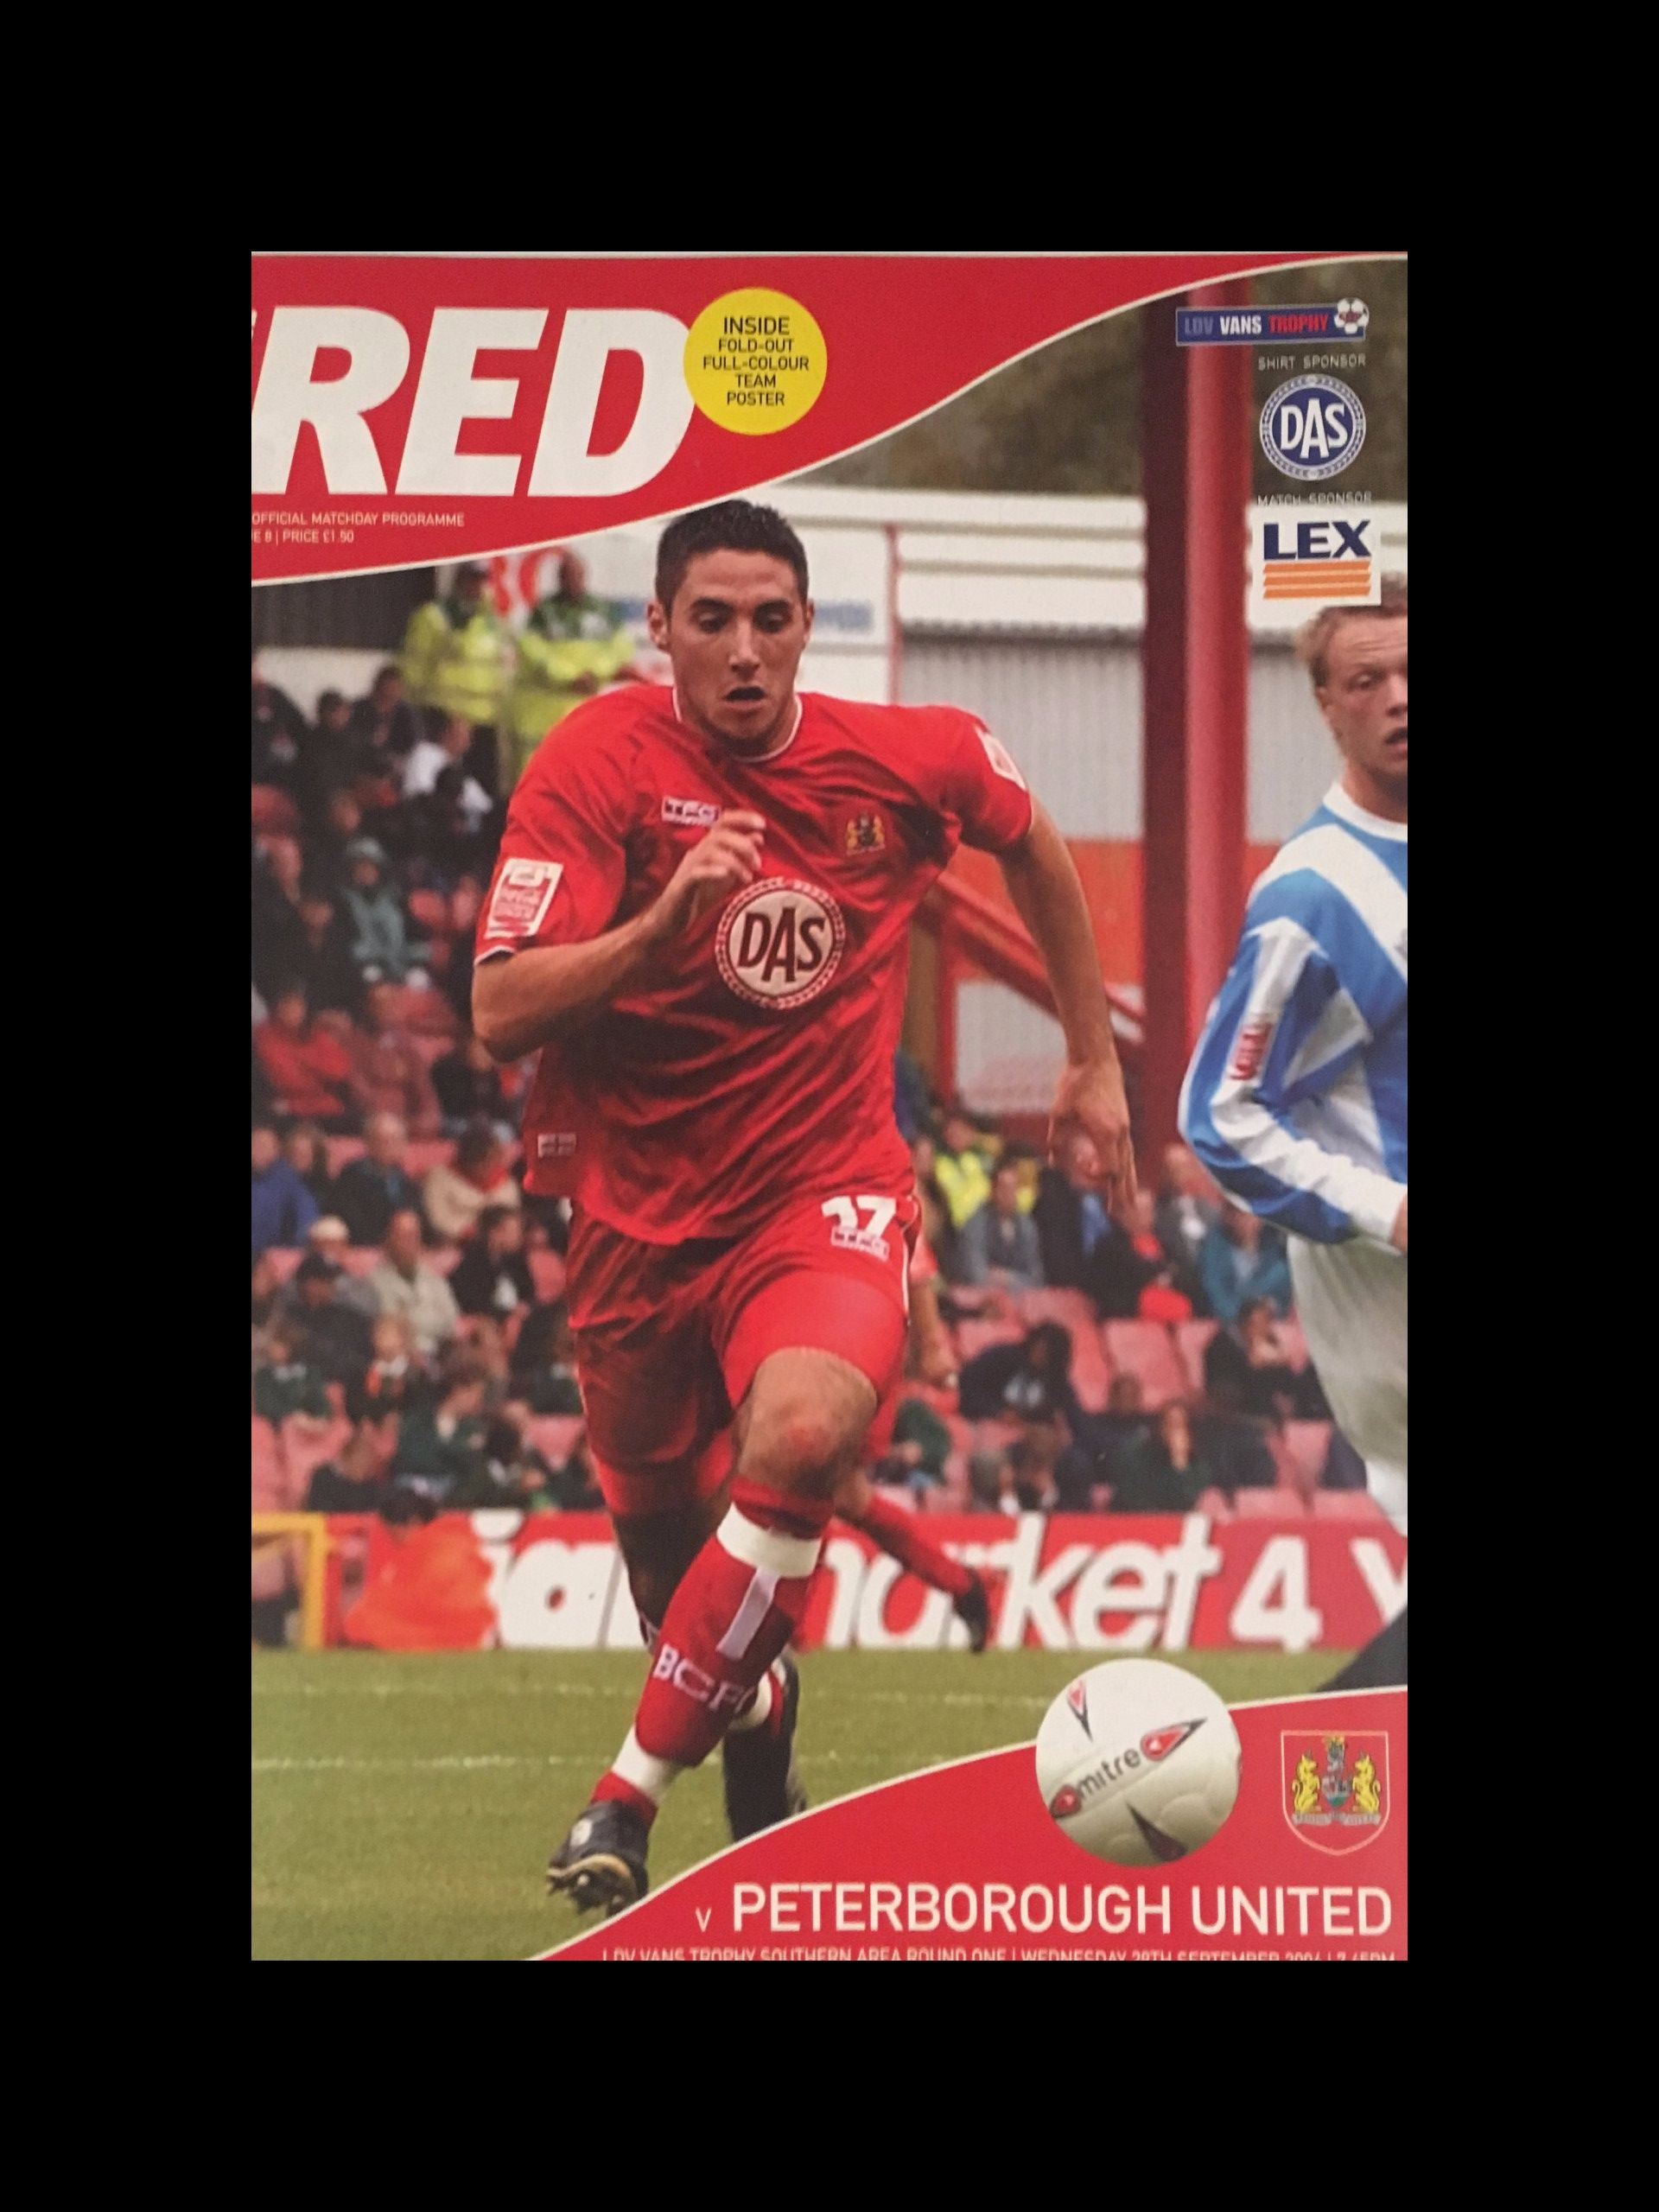 Bristol City v Peterborough United 29-09-2004 Programme